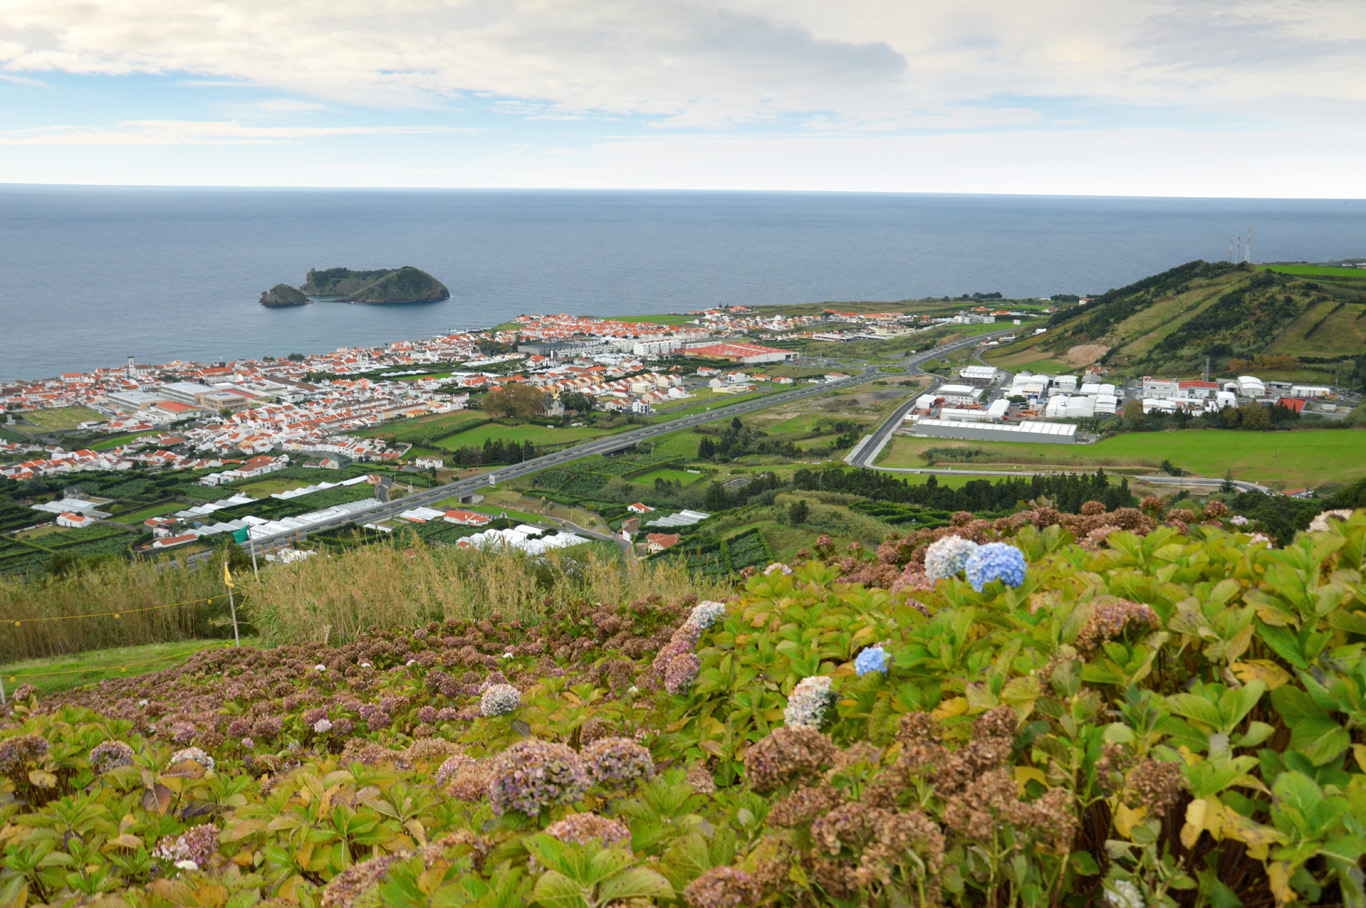 View from Senhora da Paz hill